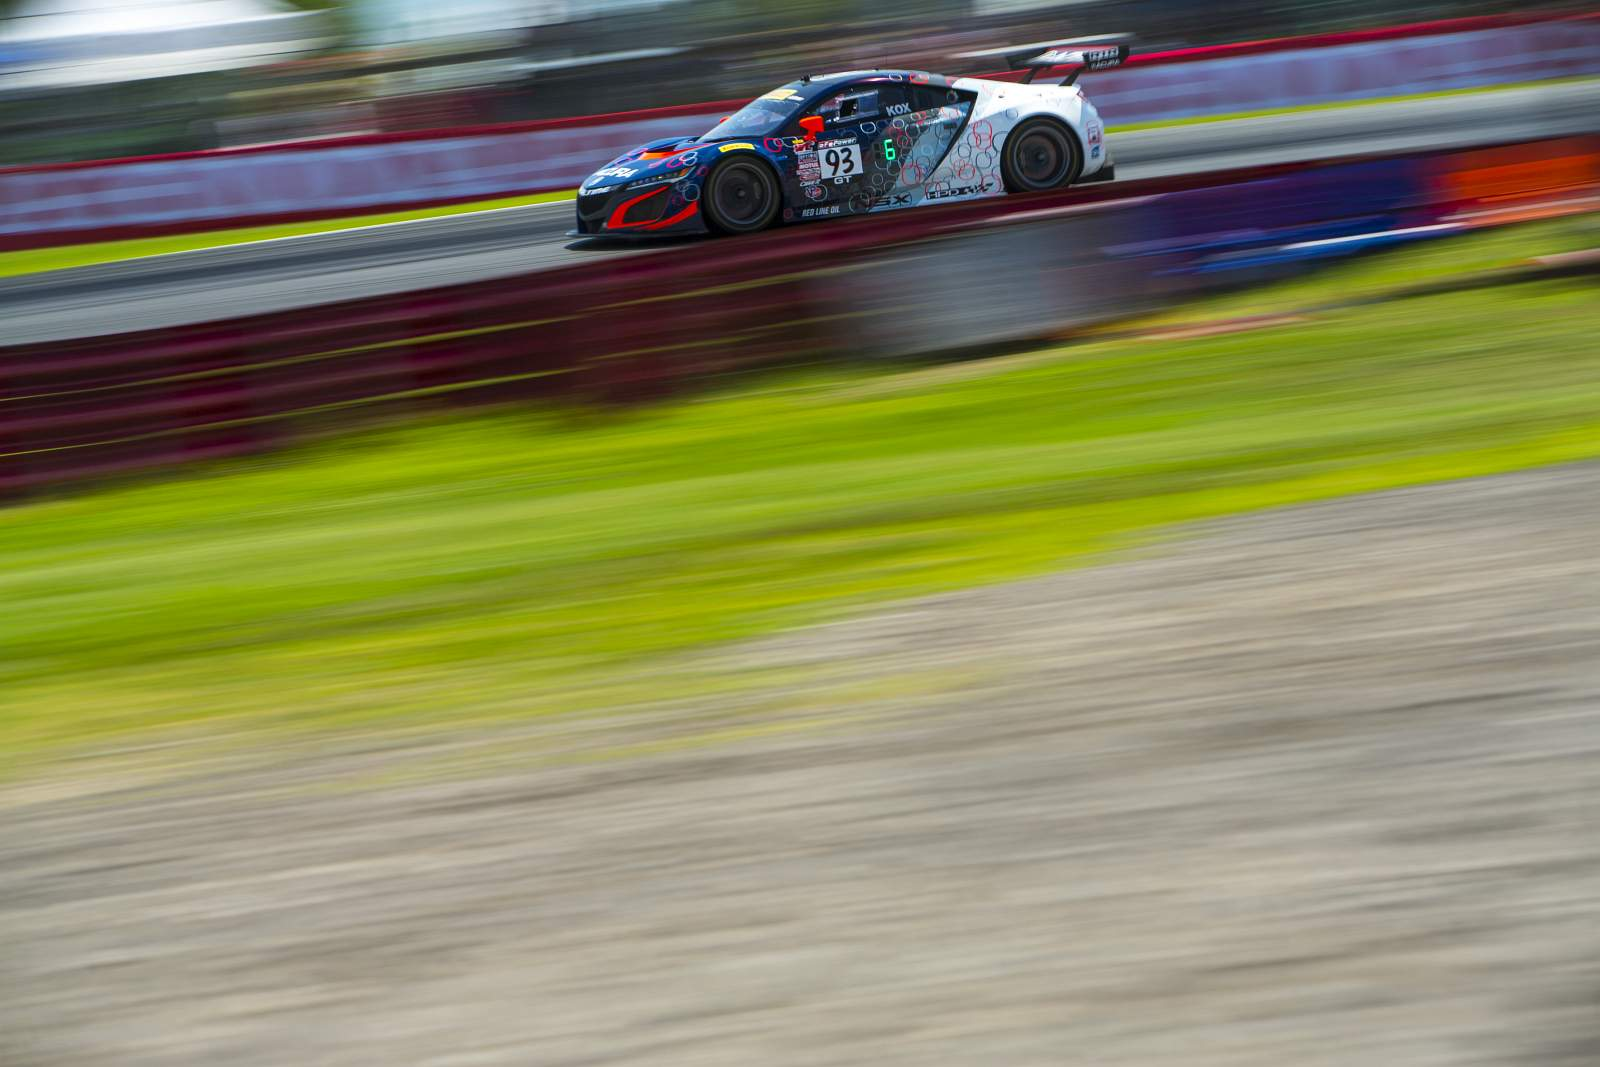 peter-kox-realtime-racing-pirelli-world-challenge-mid-ohio-119